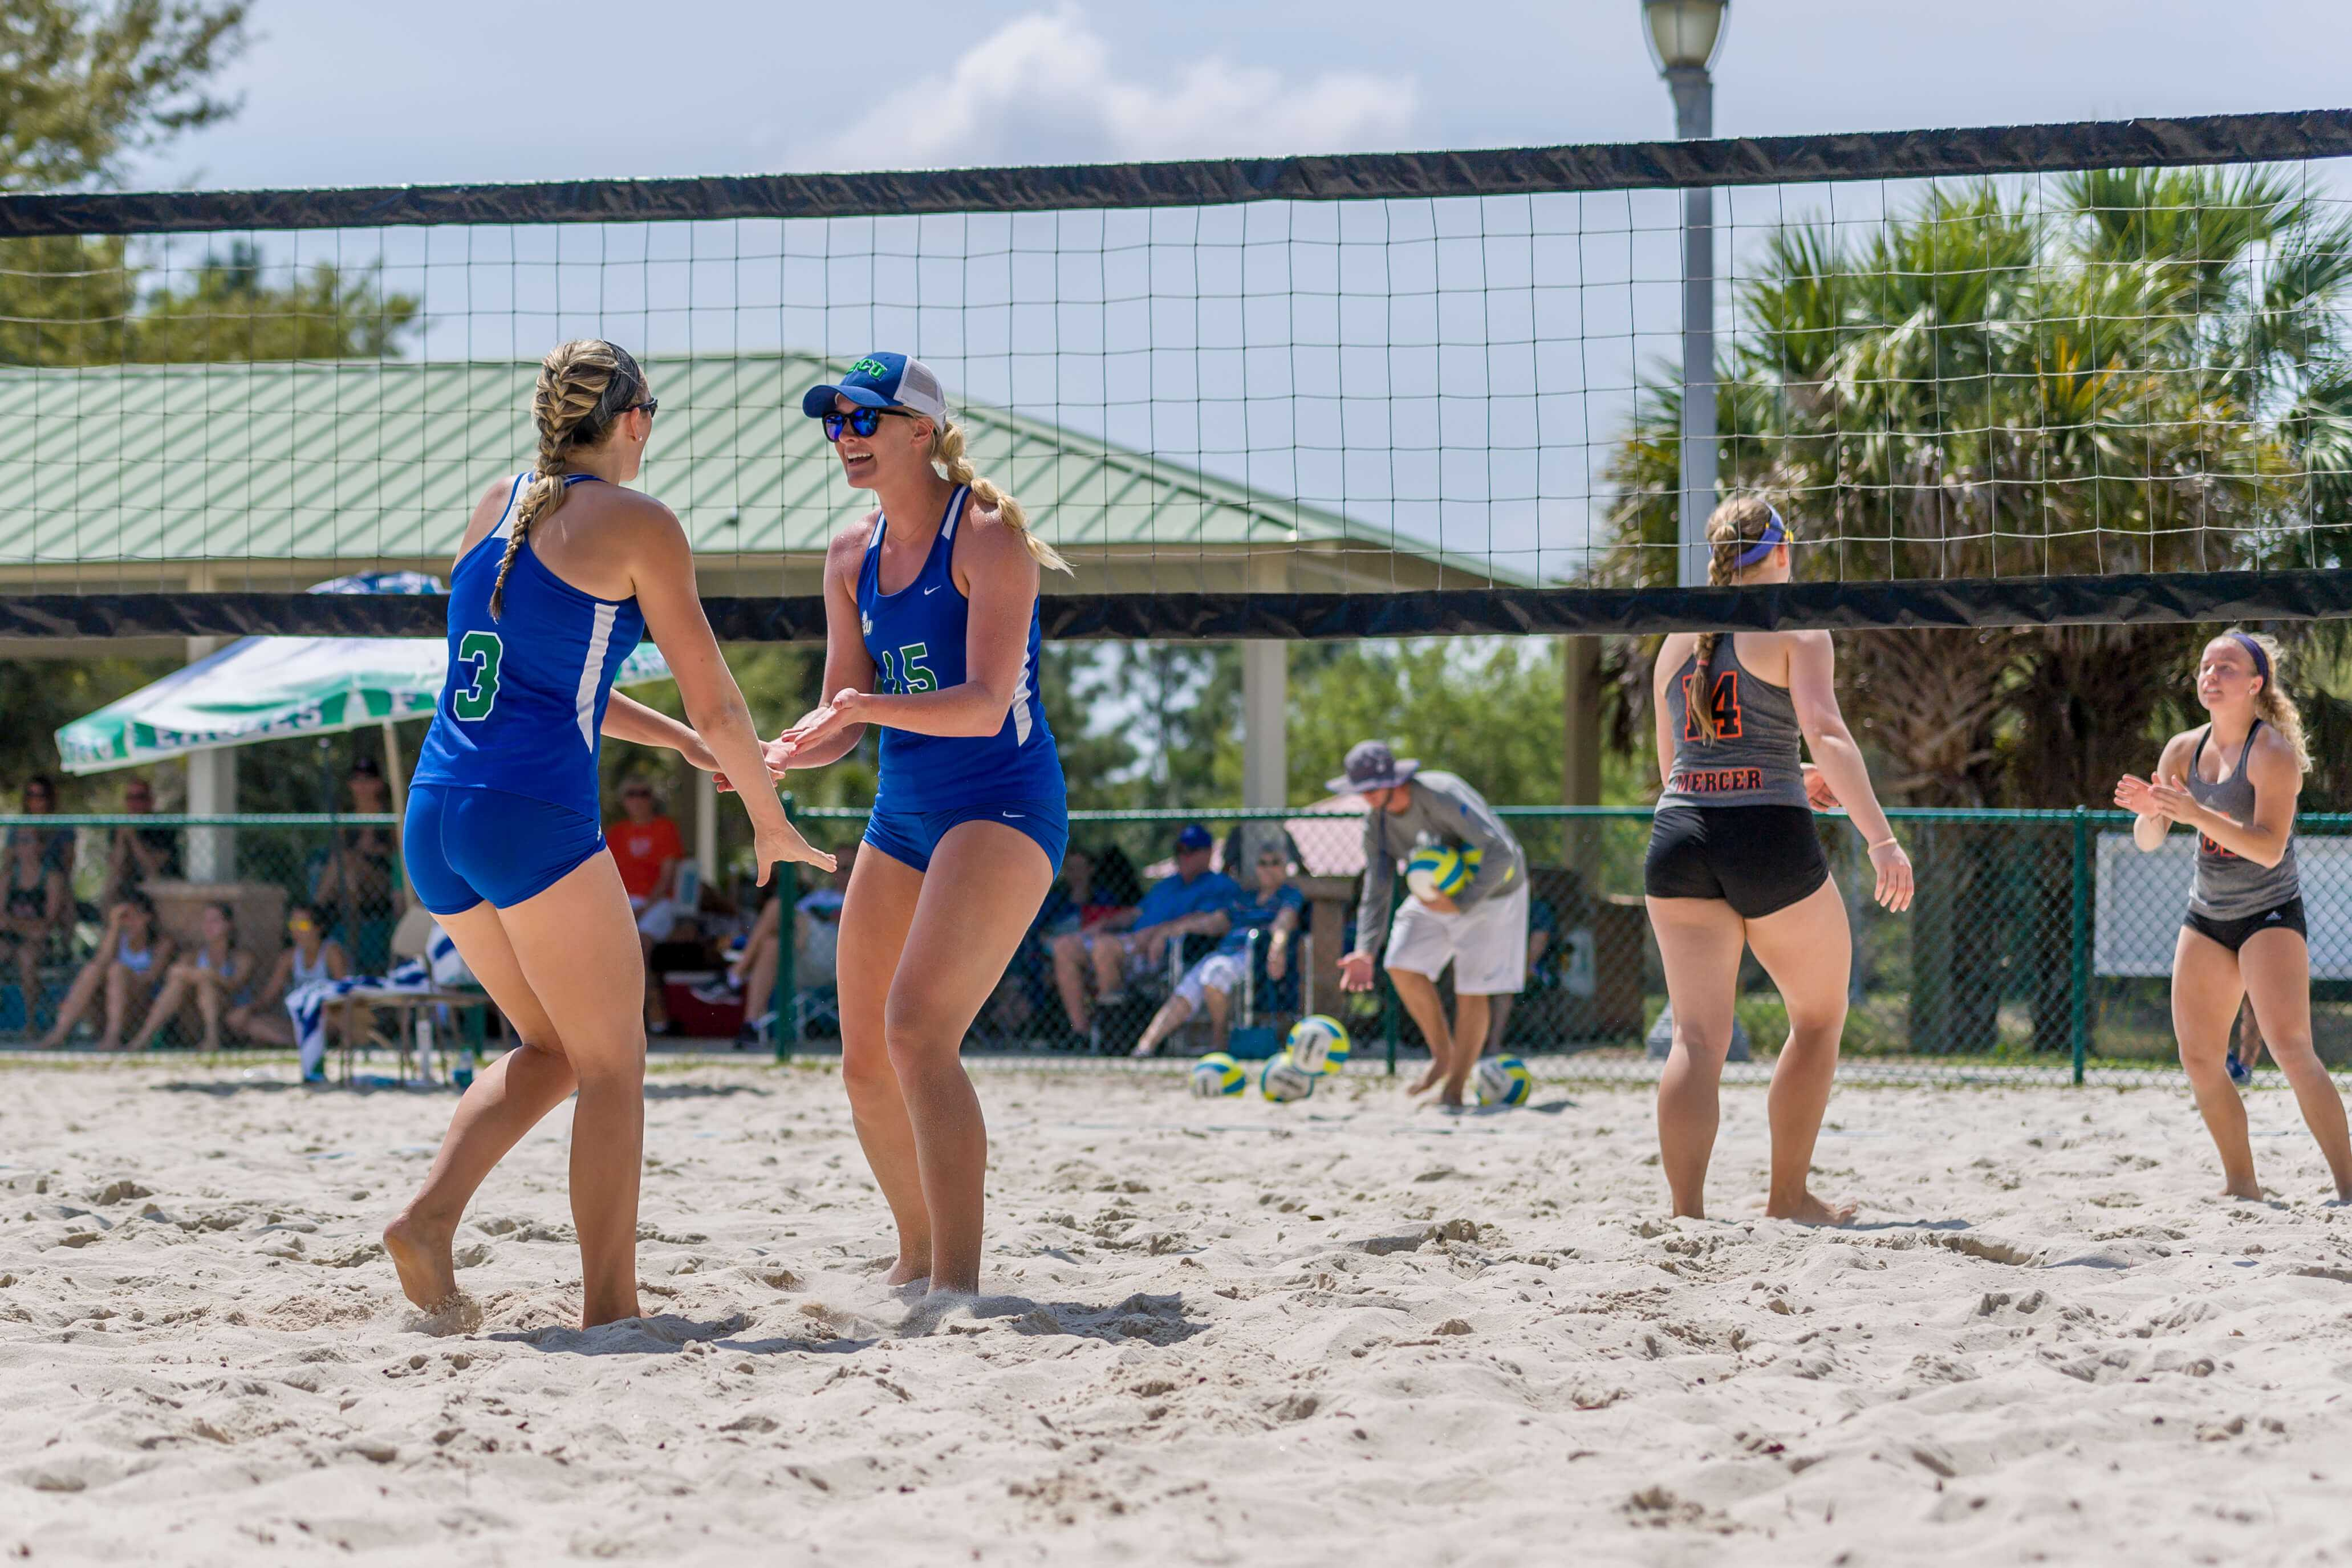 FGCU beach volleyball team takes down Webber International